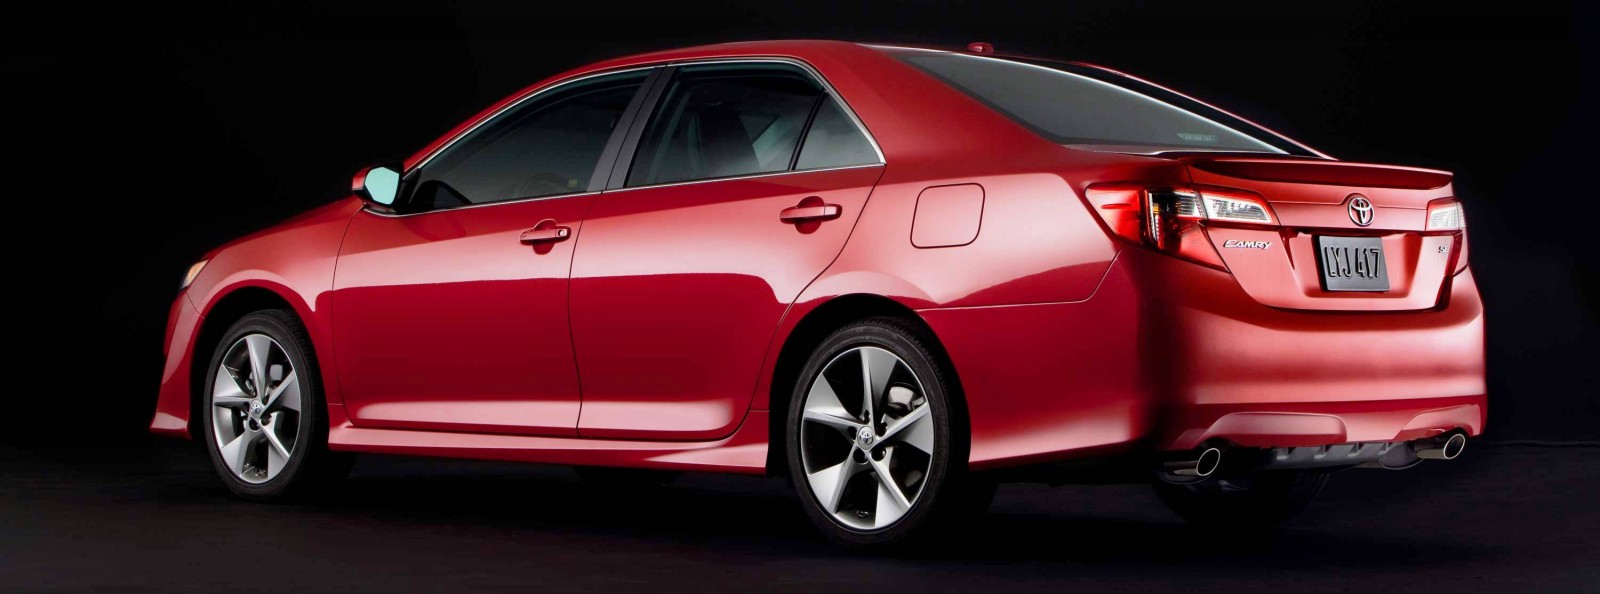 Car Shopping 2014 5 Toyota Camry Se Updates Styling With